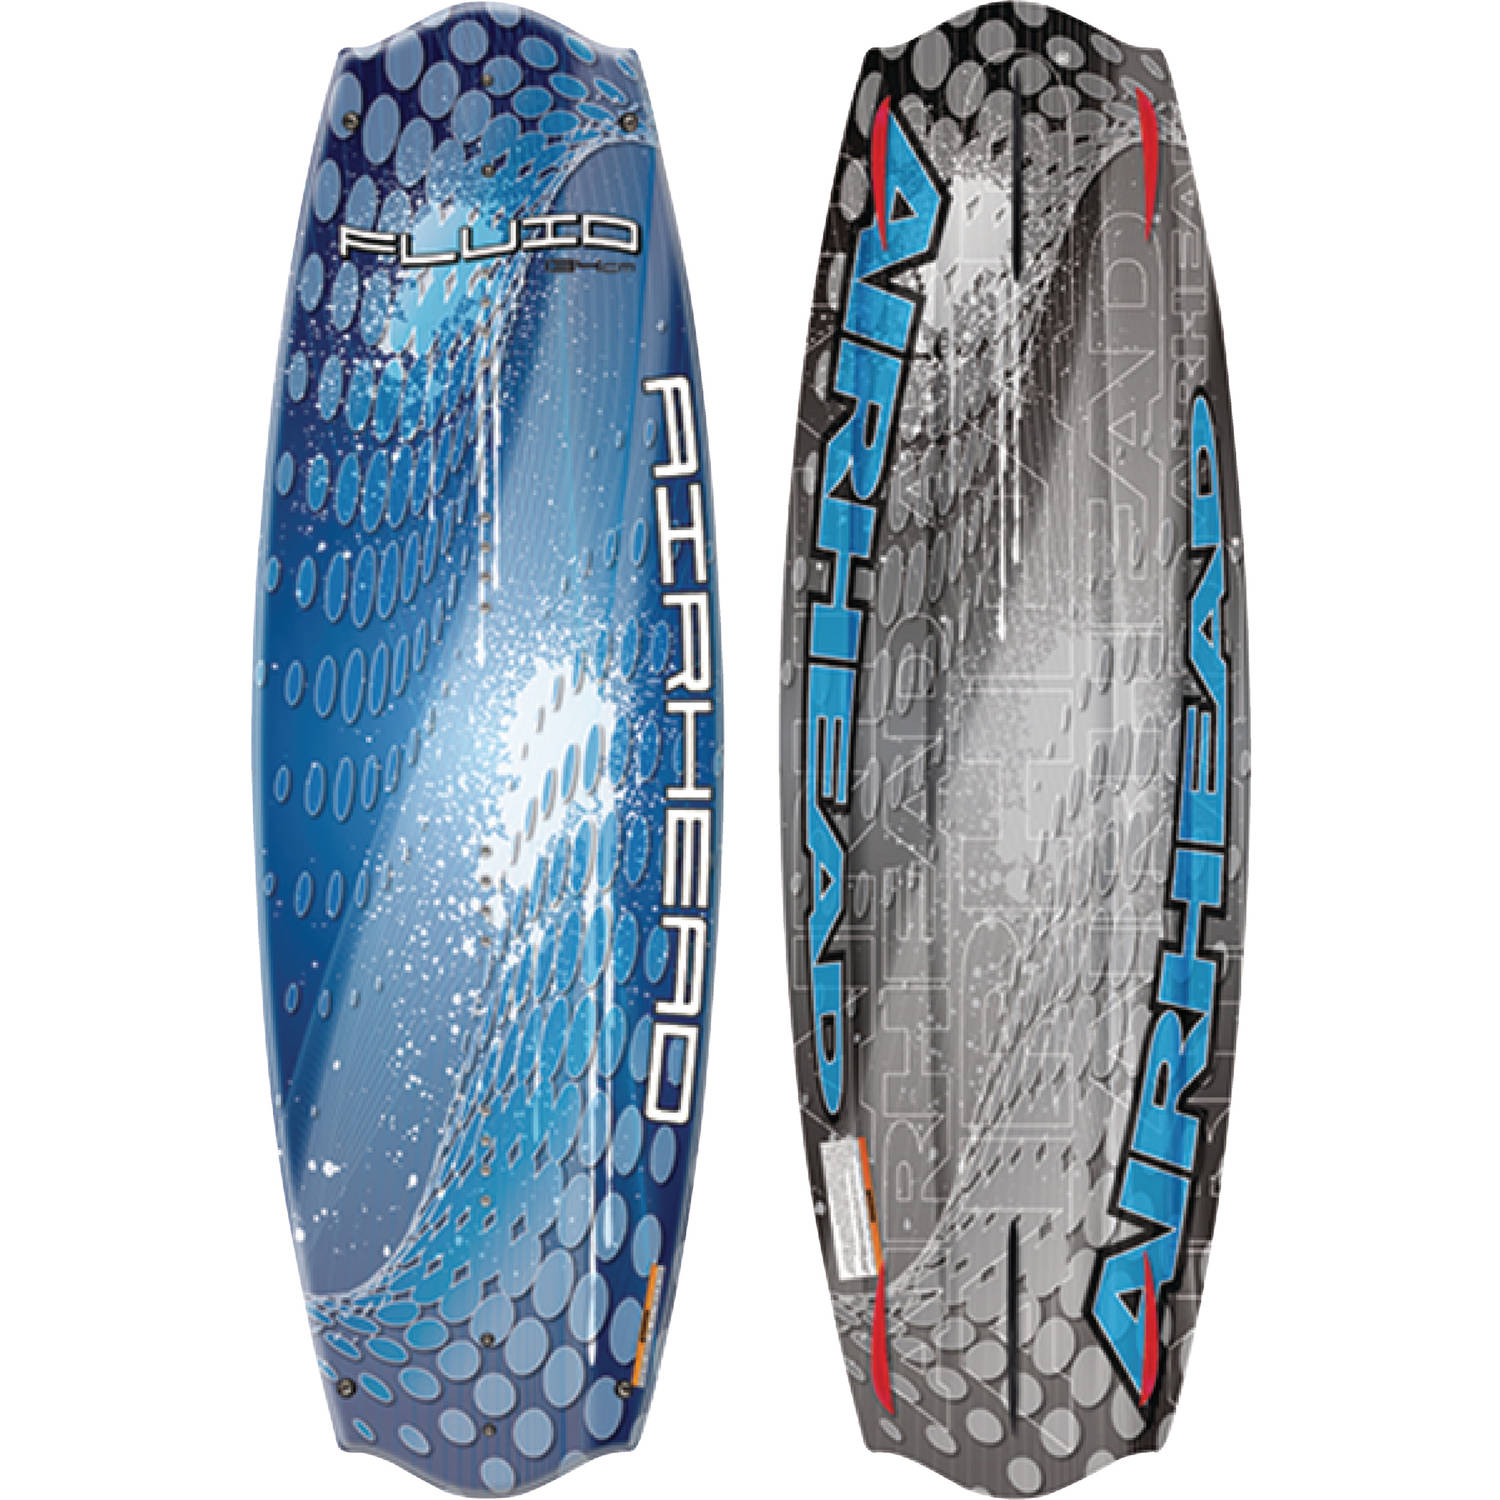 Airhead AWH-4020 Fluid Wakeboard for Riders 150 lbs and up, Venom Bindings Size 9 to 12 by Kwik Tek